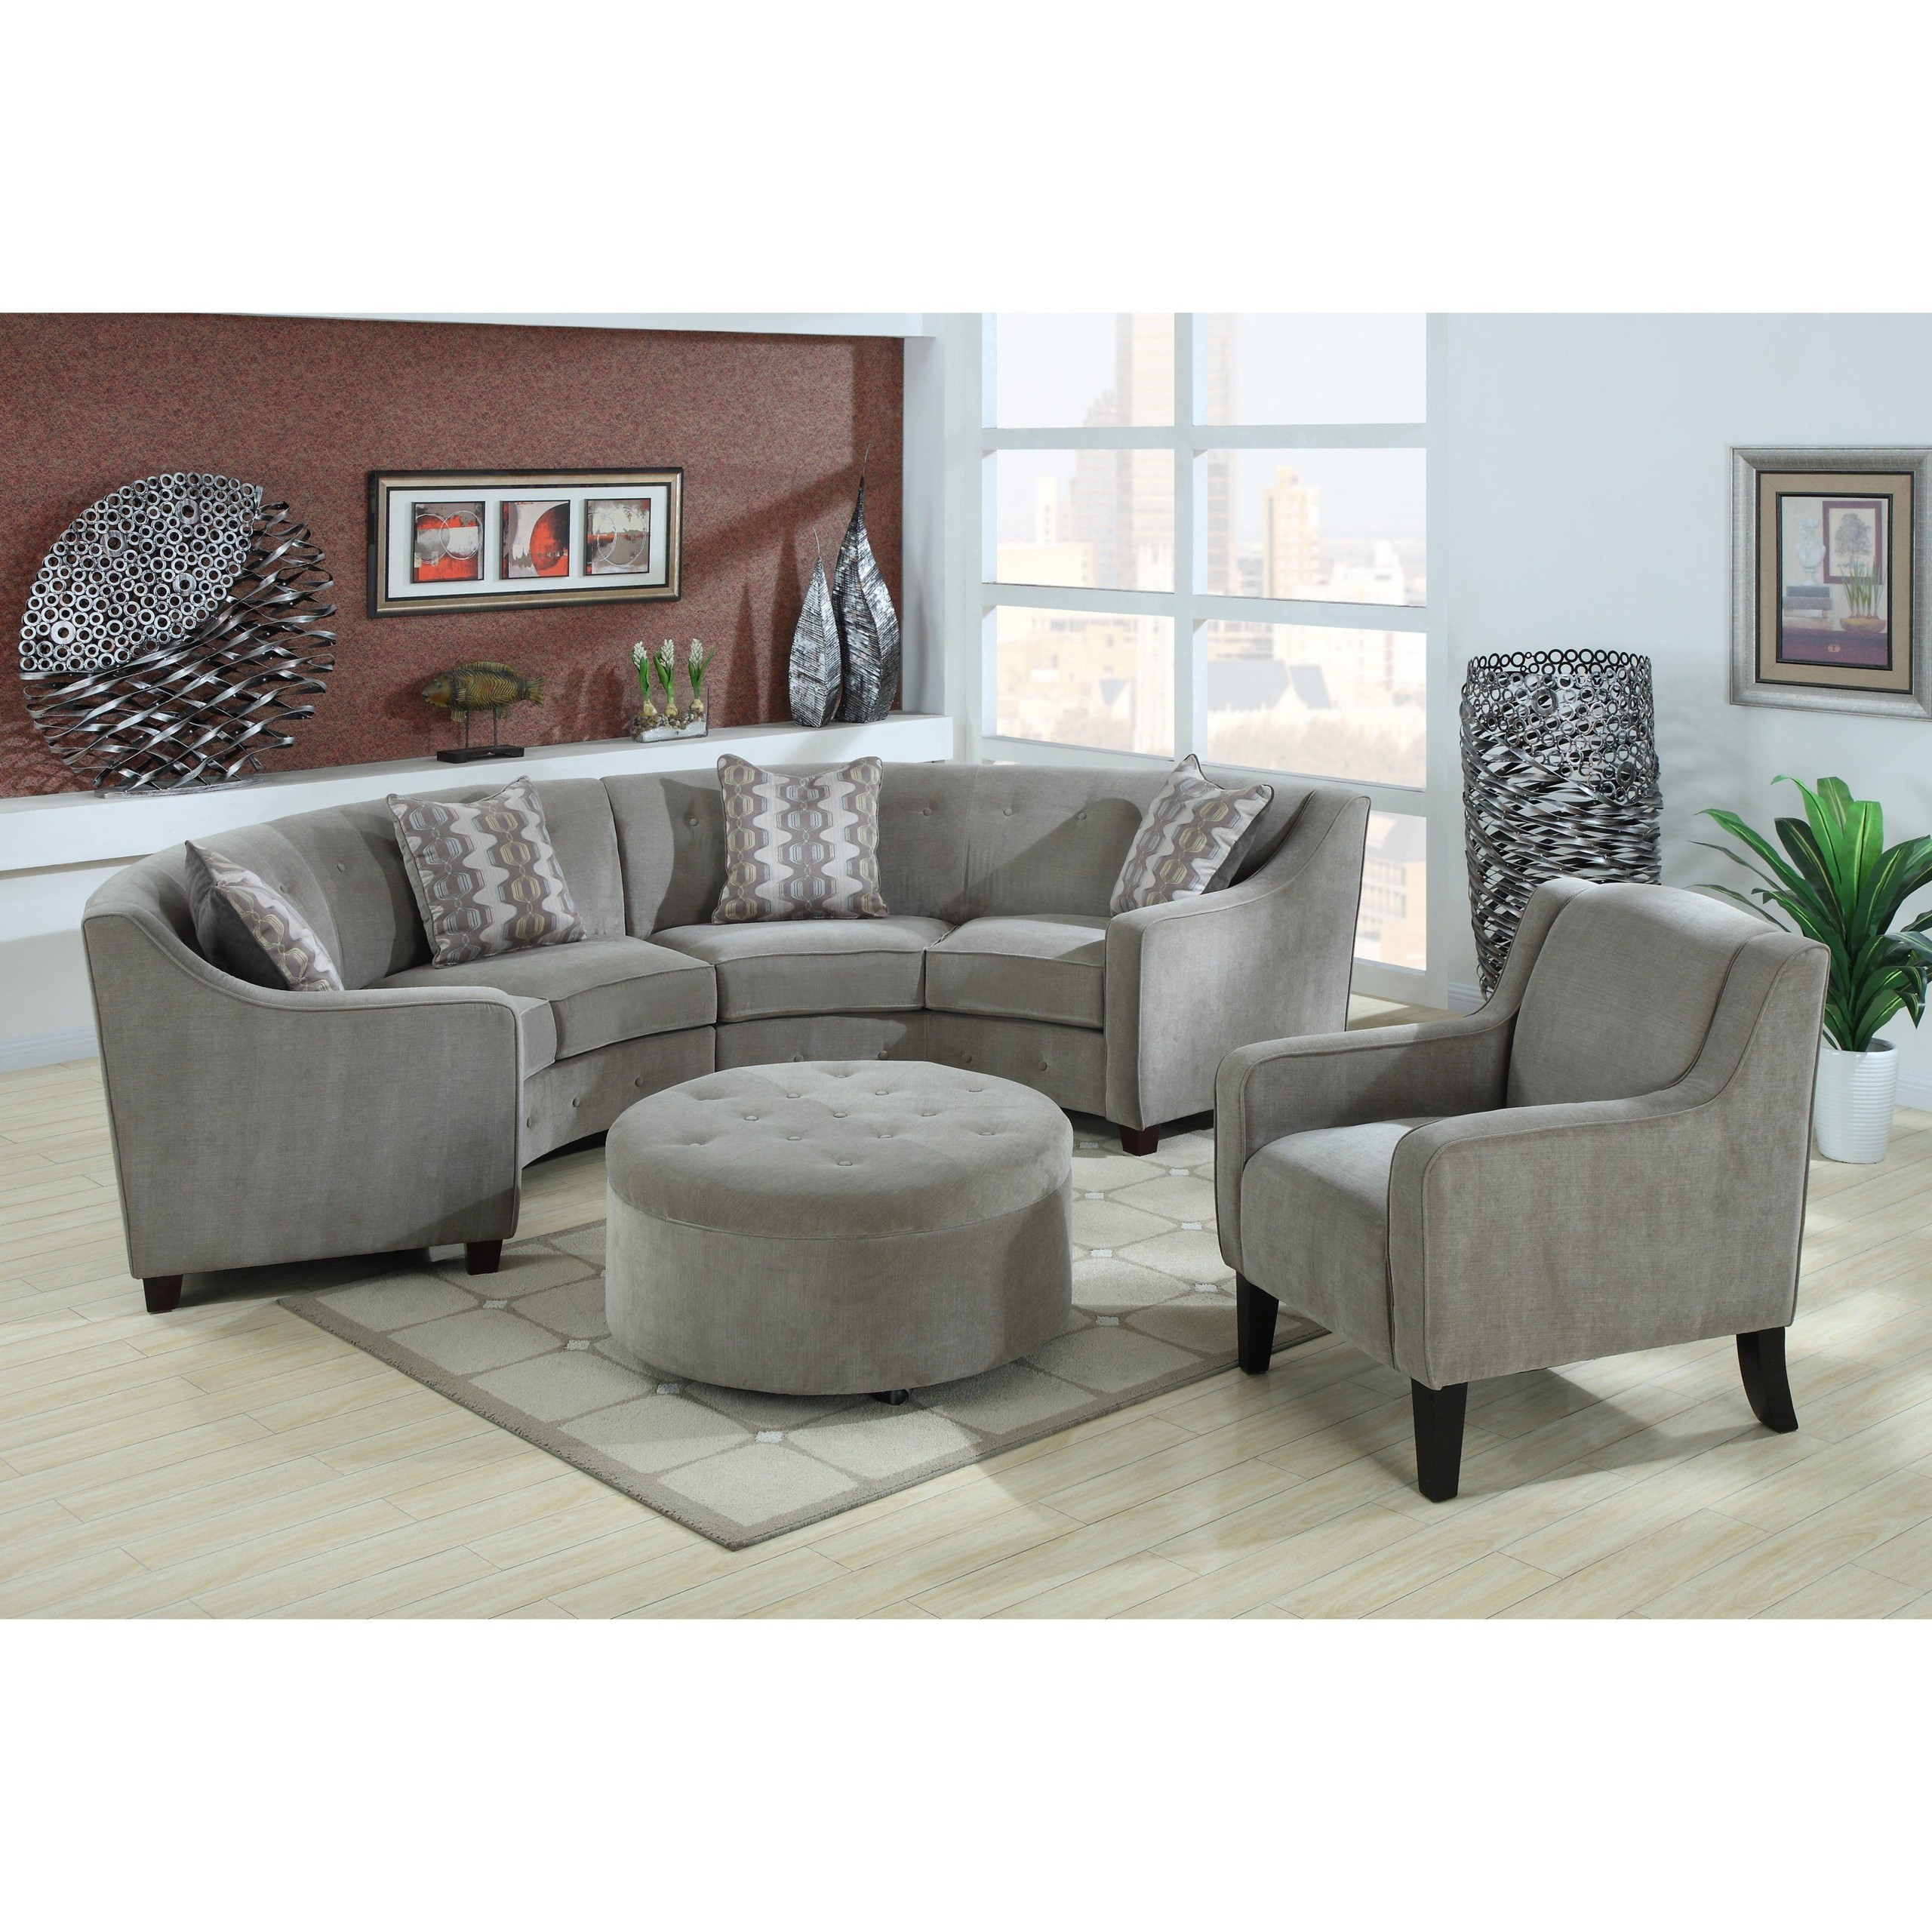 Curved Sectional Sofa Couch Foter